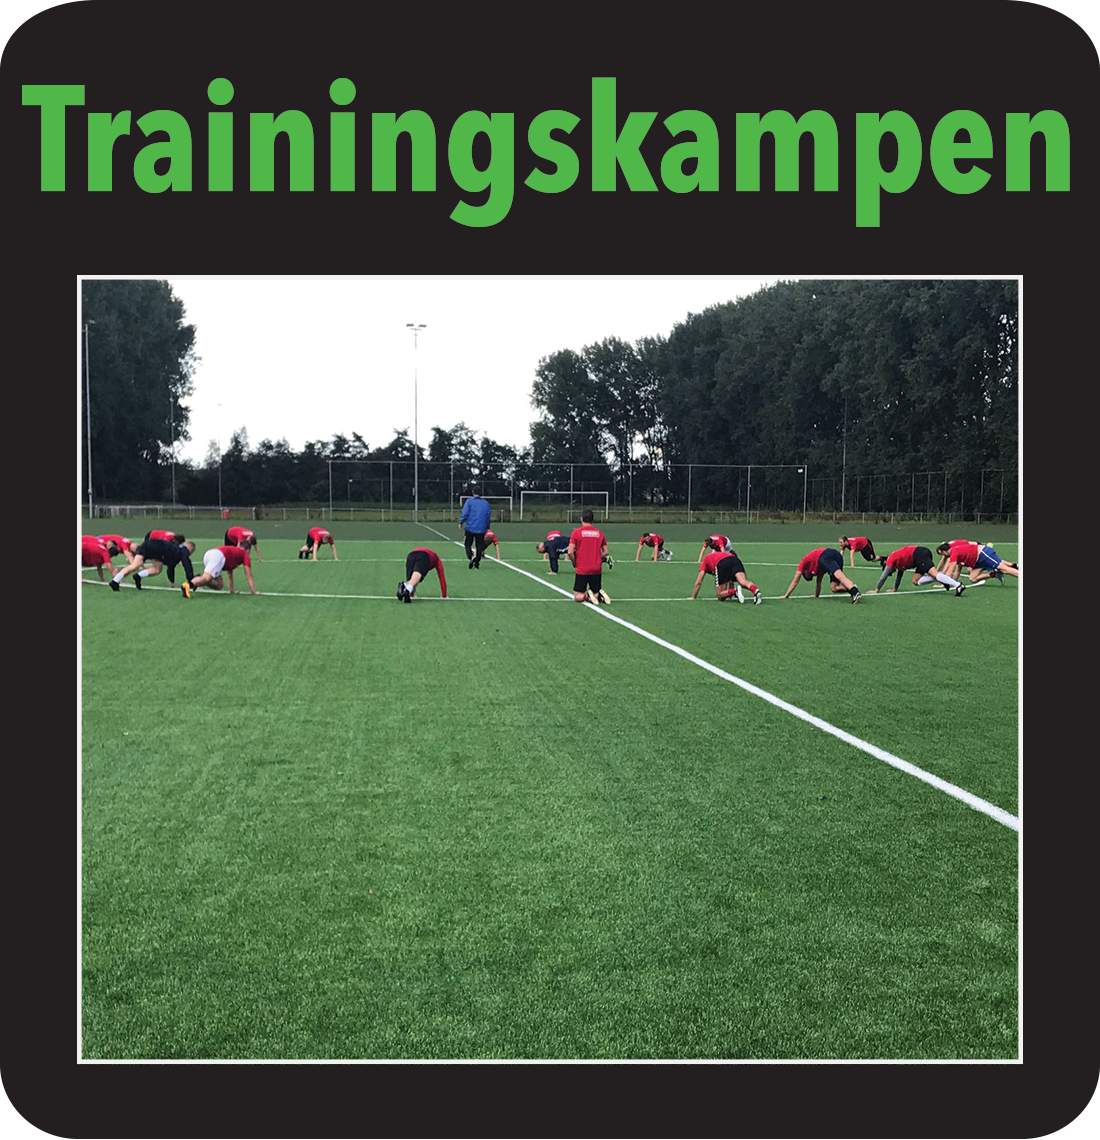 Trainingskampen in Nederland